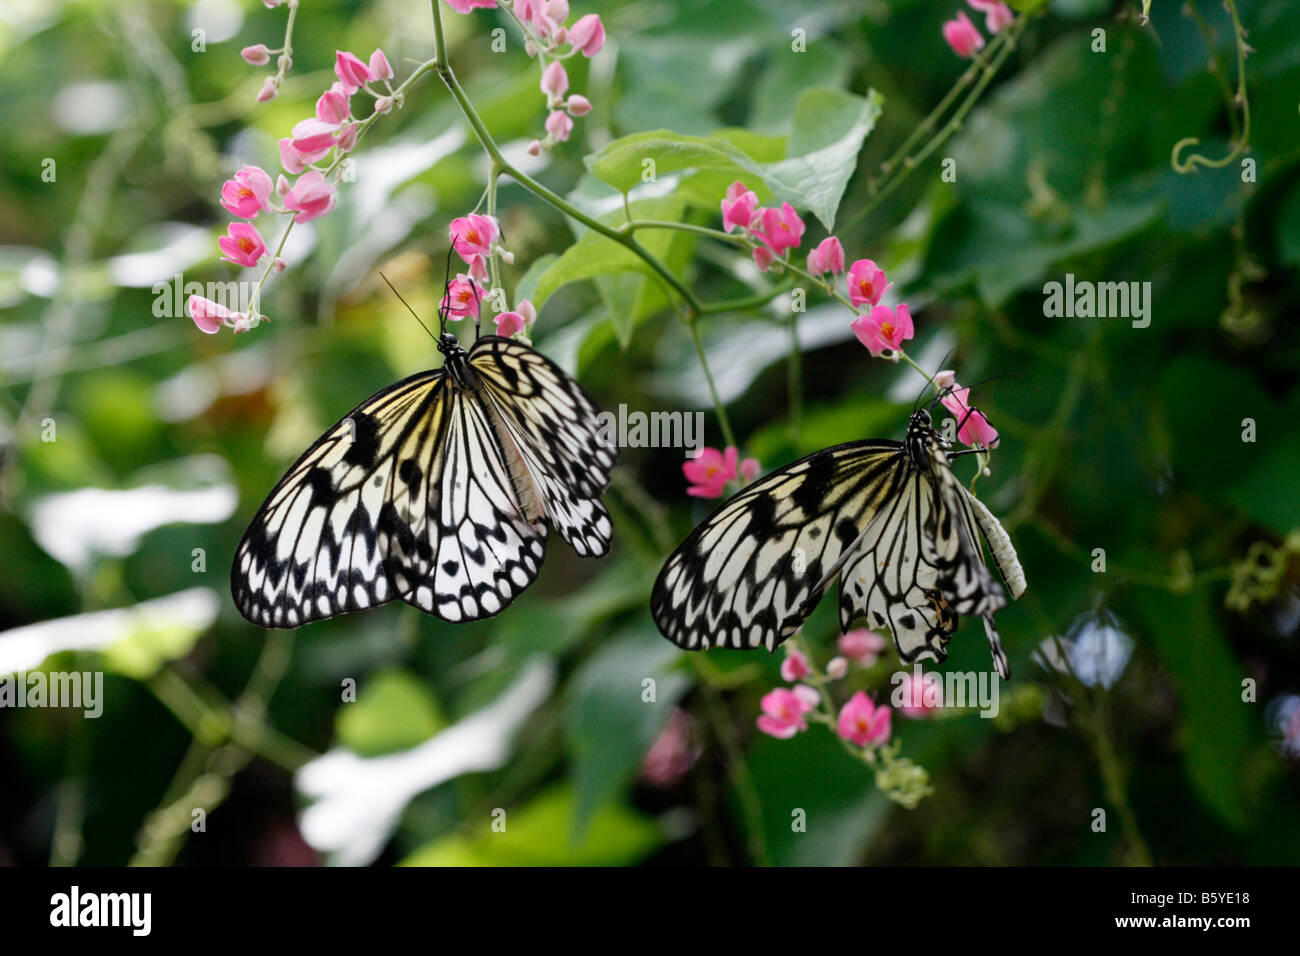 Rice Paper Butterfly On Pink Flowers In A Garden In Cape Town South